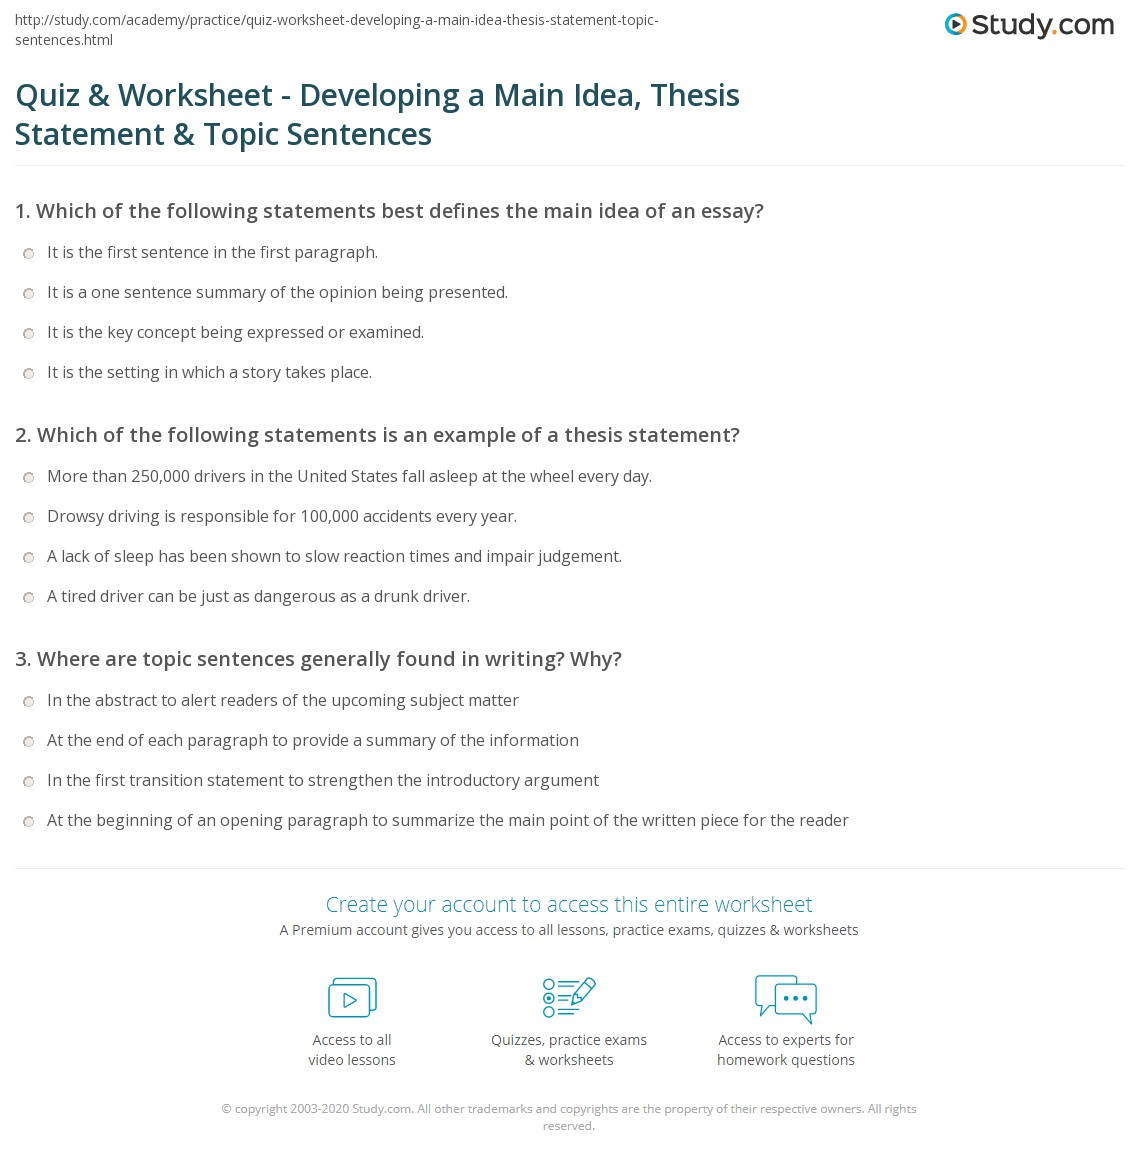 quiz worksheet developing a main idea thesis statement which of the following statements would be an example of a thesis statement